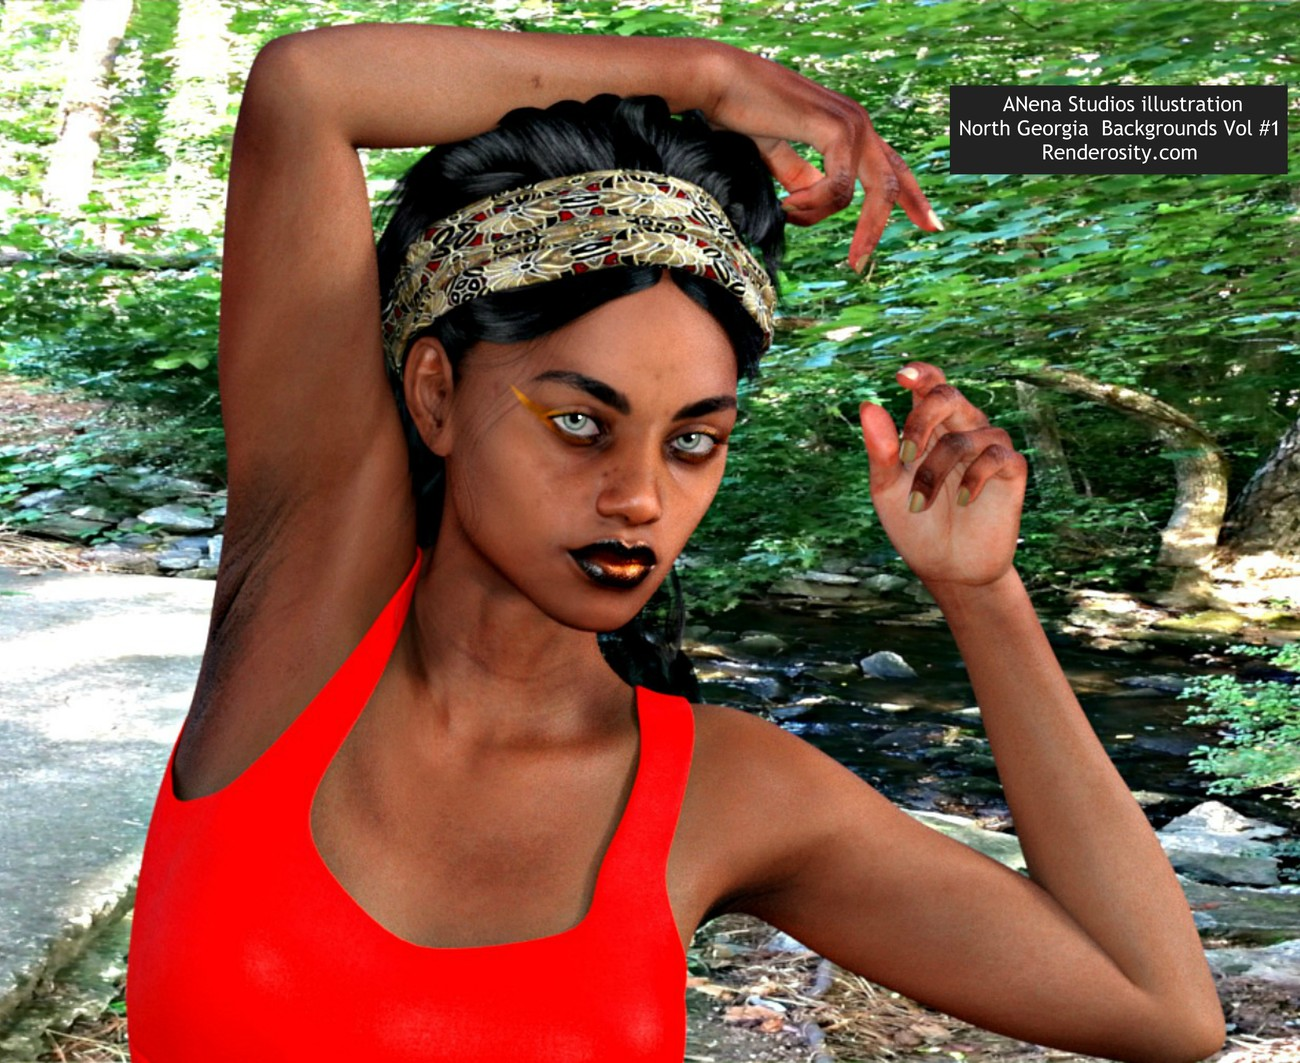 Imani By the Creek by ANeNa